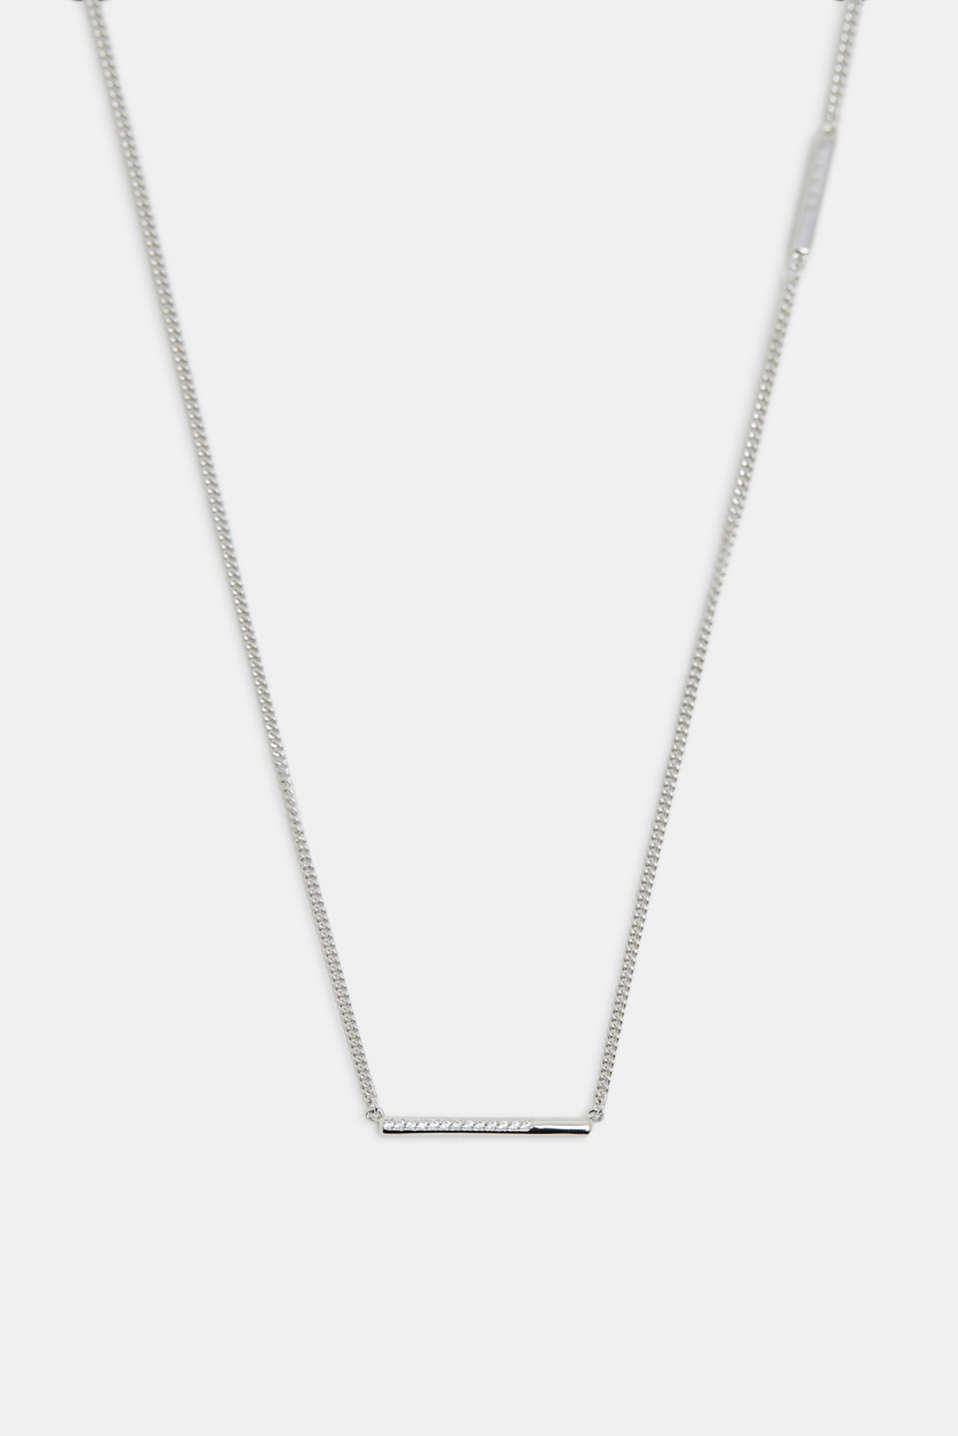 Esprit - Necklace with a zirconia pendant